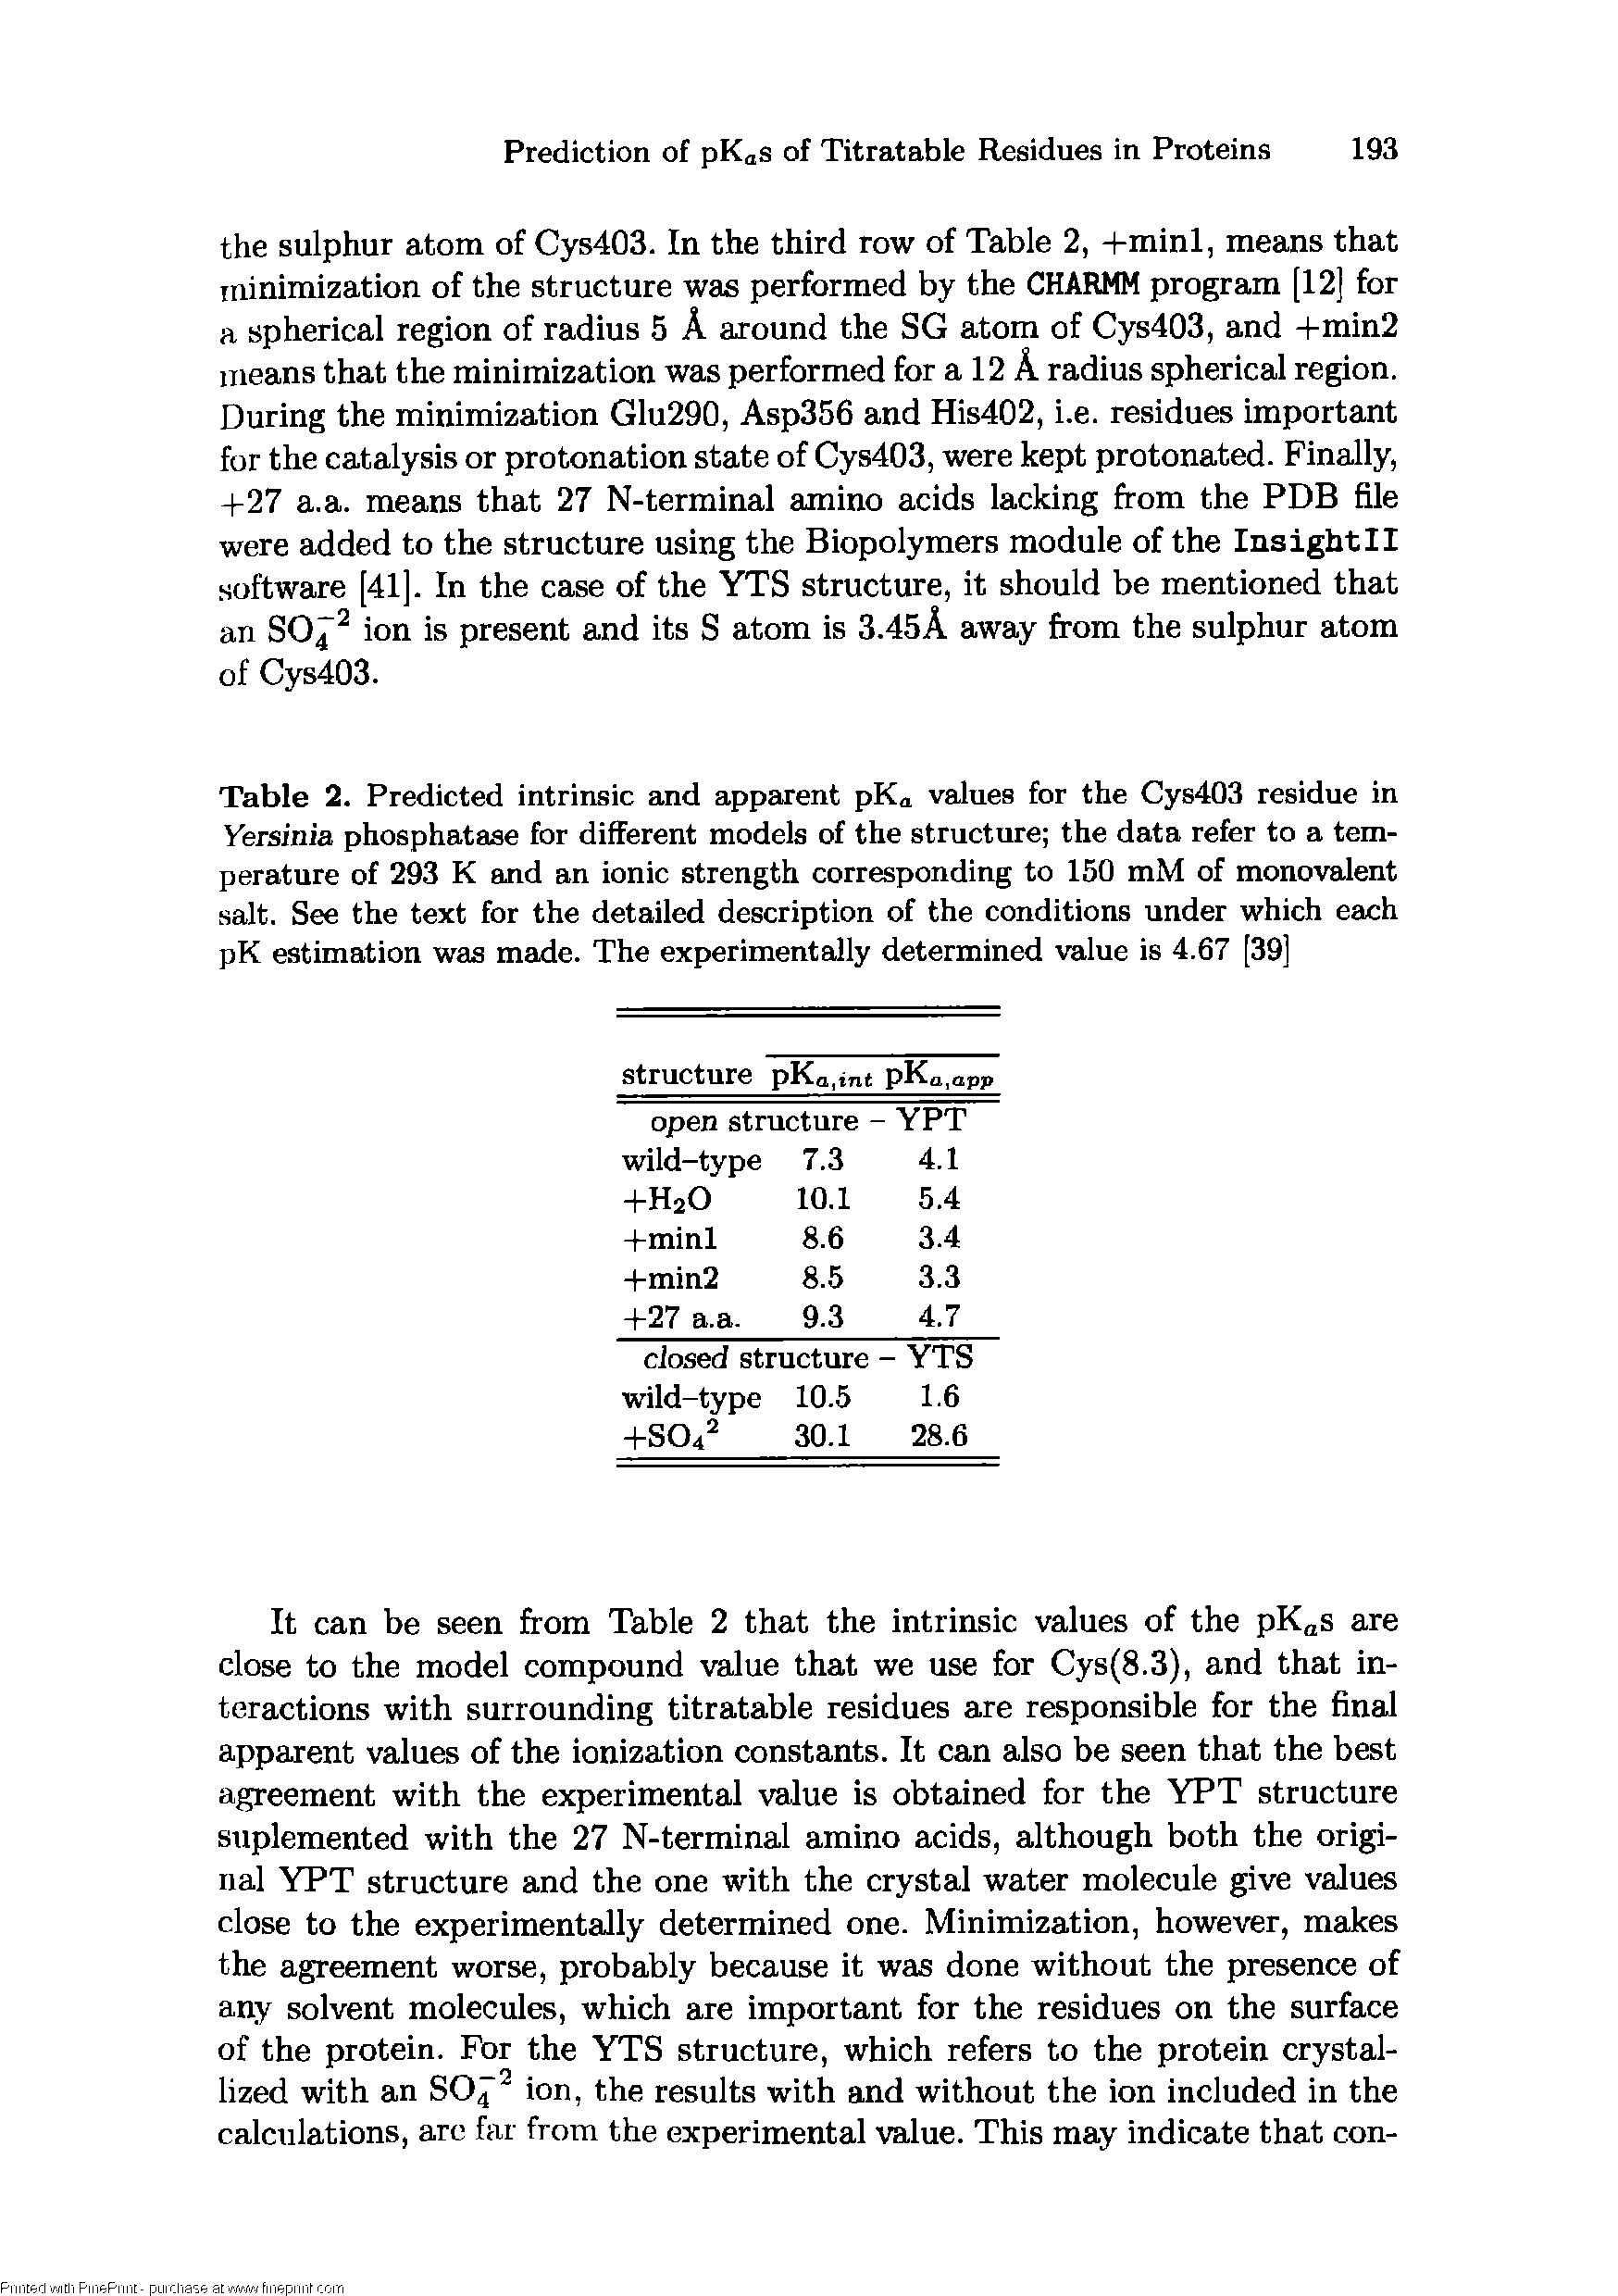 Table 2. Predicted intrinsic and apparent pKa values for the Cys403 residue in Yersinia phosphatase for different models of the structure the data refer to a temperature of 293 K and an ionic strength corresponding to 150 mM of monovalent salt. See the text for the detailed description of the conditions under which each pK estimation was made. The experimentally determined value is 4.67 [39]...